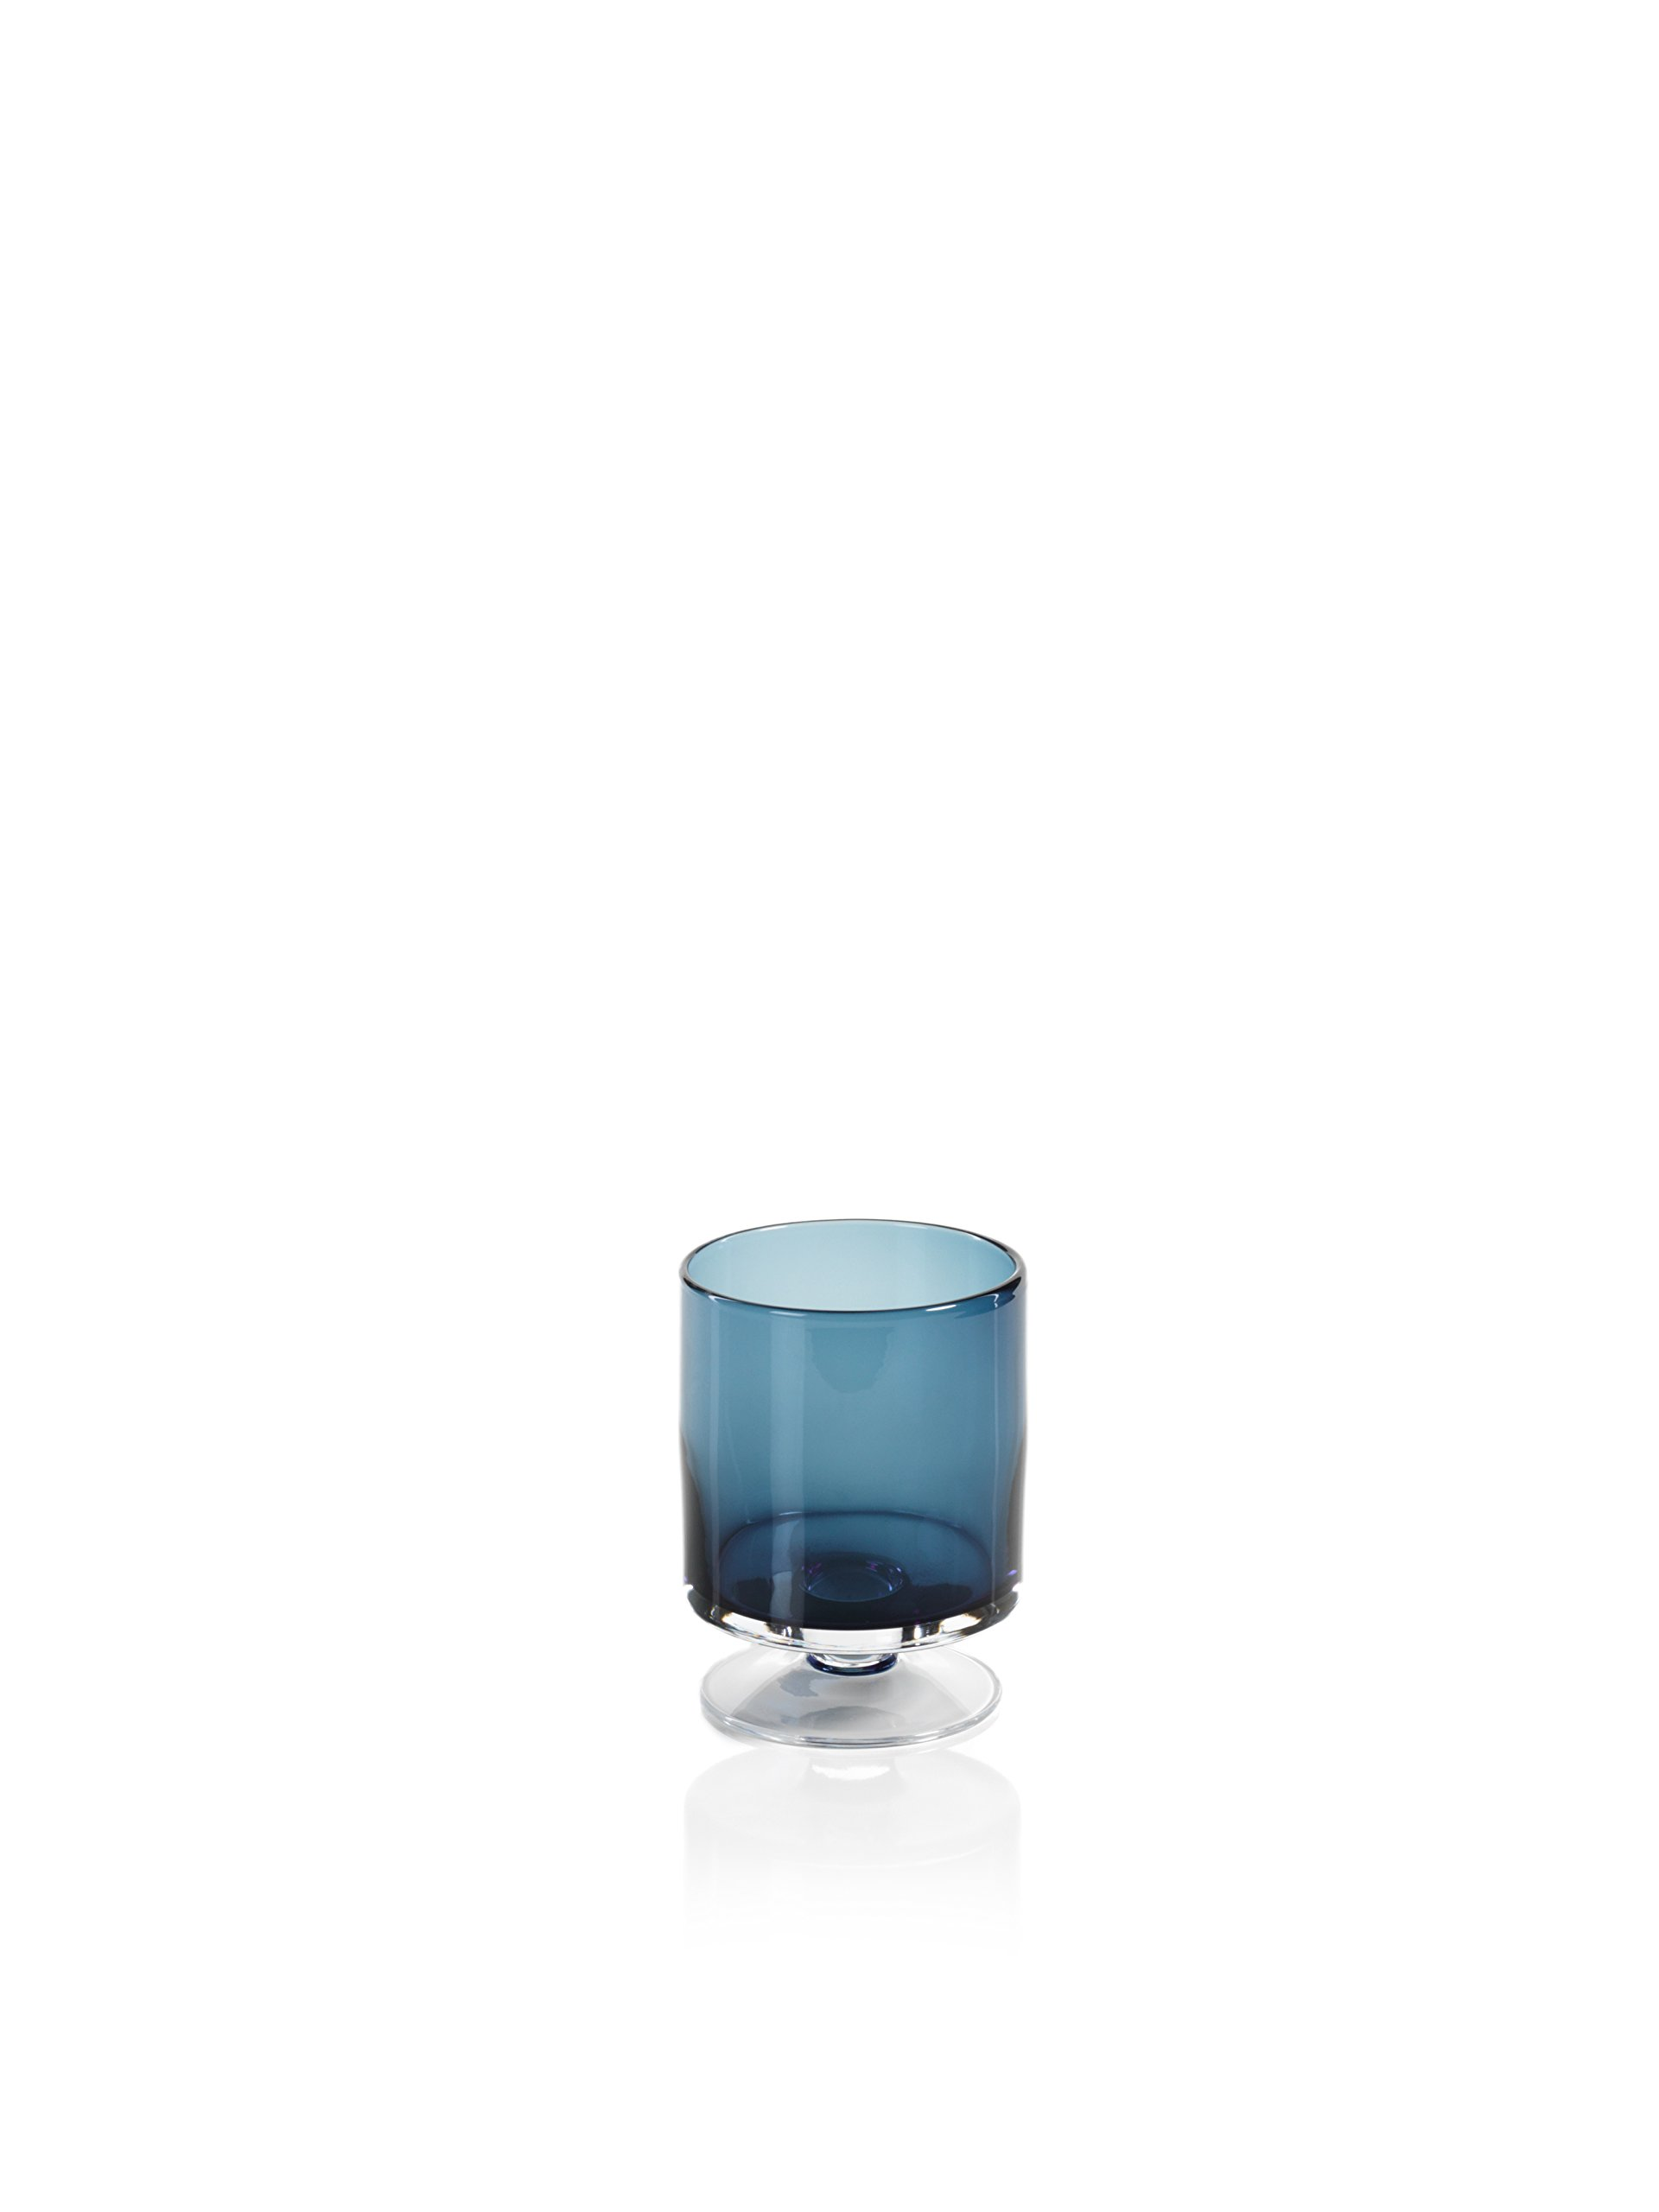 Zodax'' Algarve 6'' Tall Footed Base, Midnight Blue Hurricane